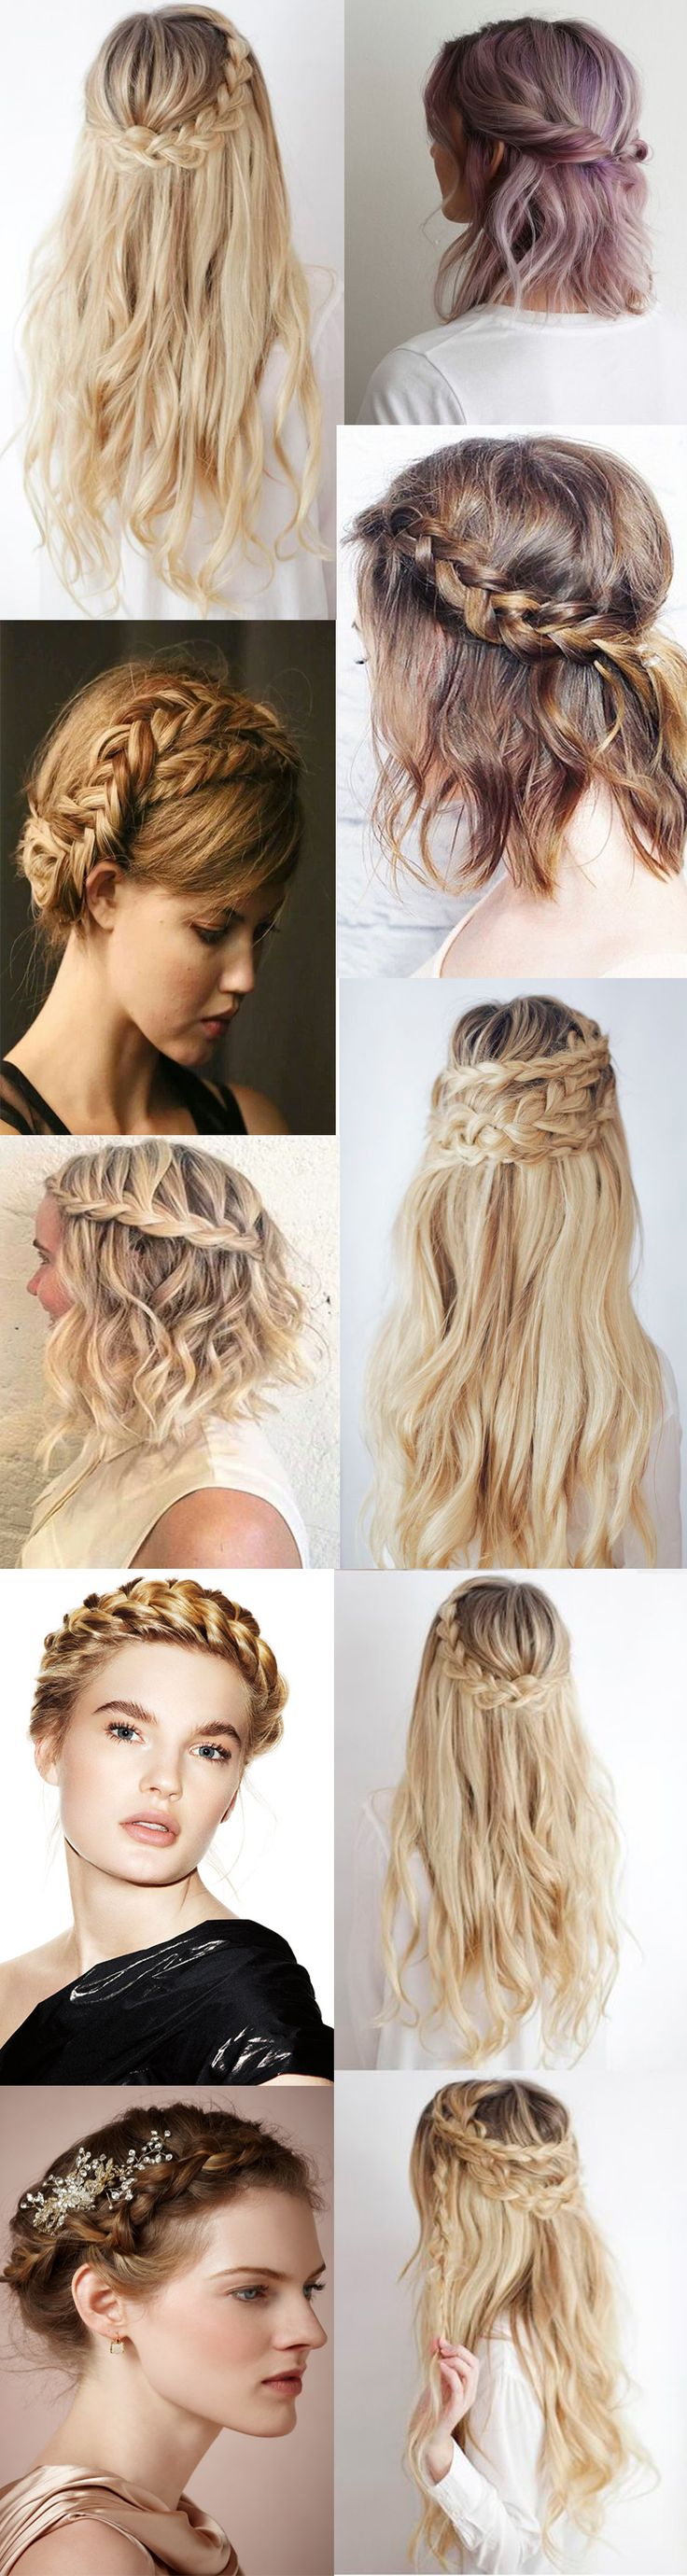 1684 best Hairstyles 2017 images on Pinterest